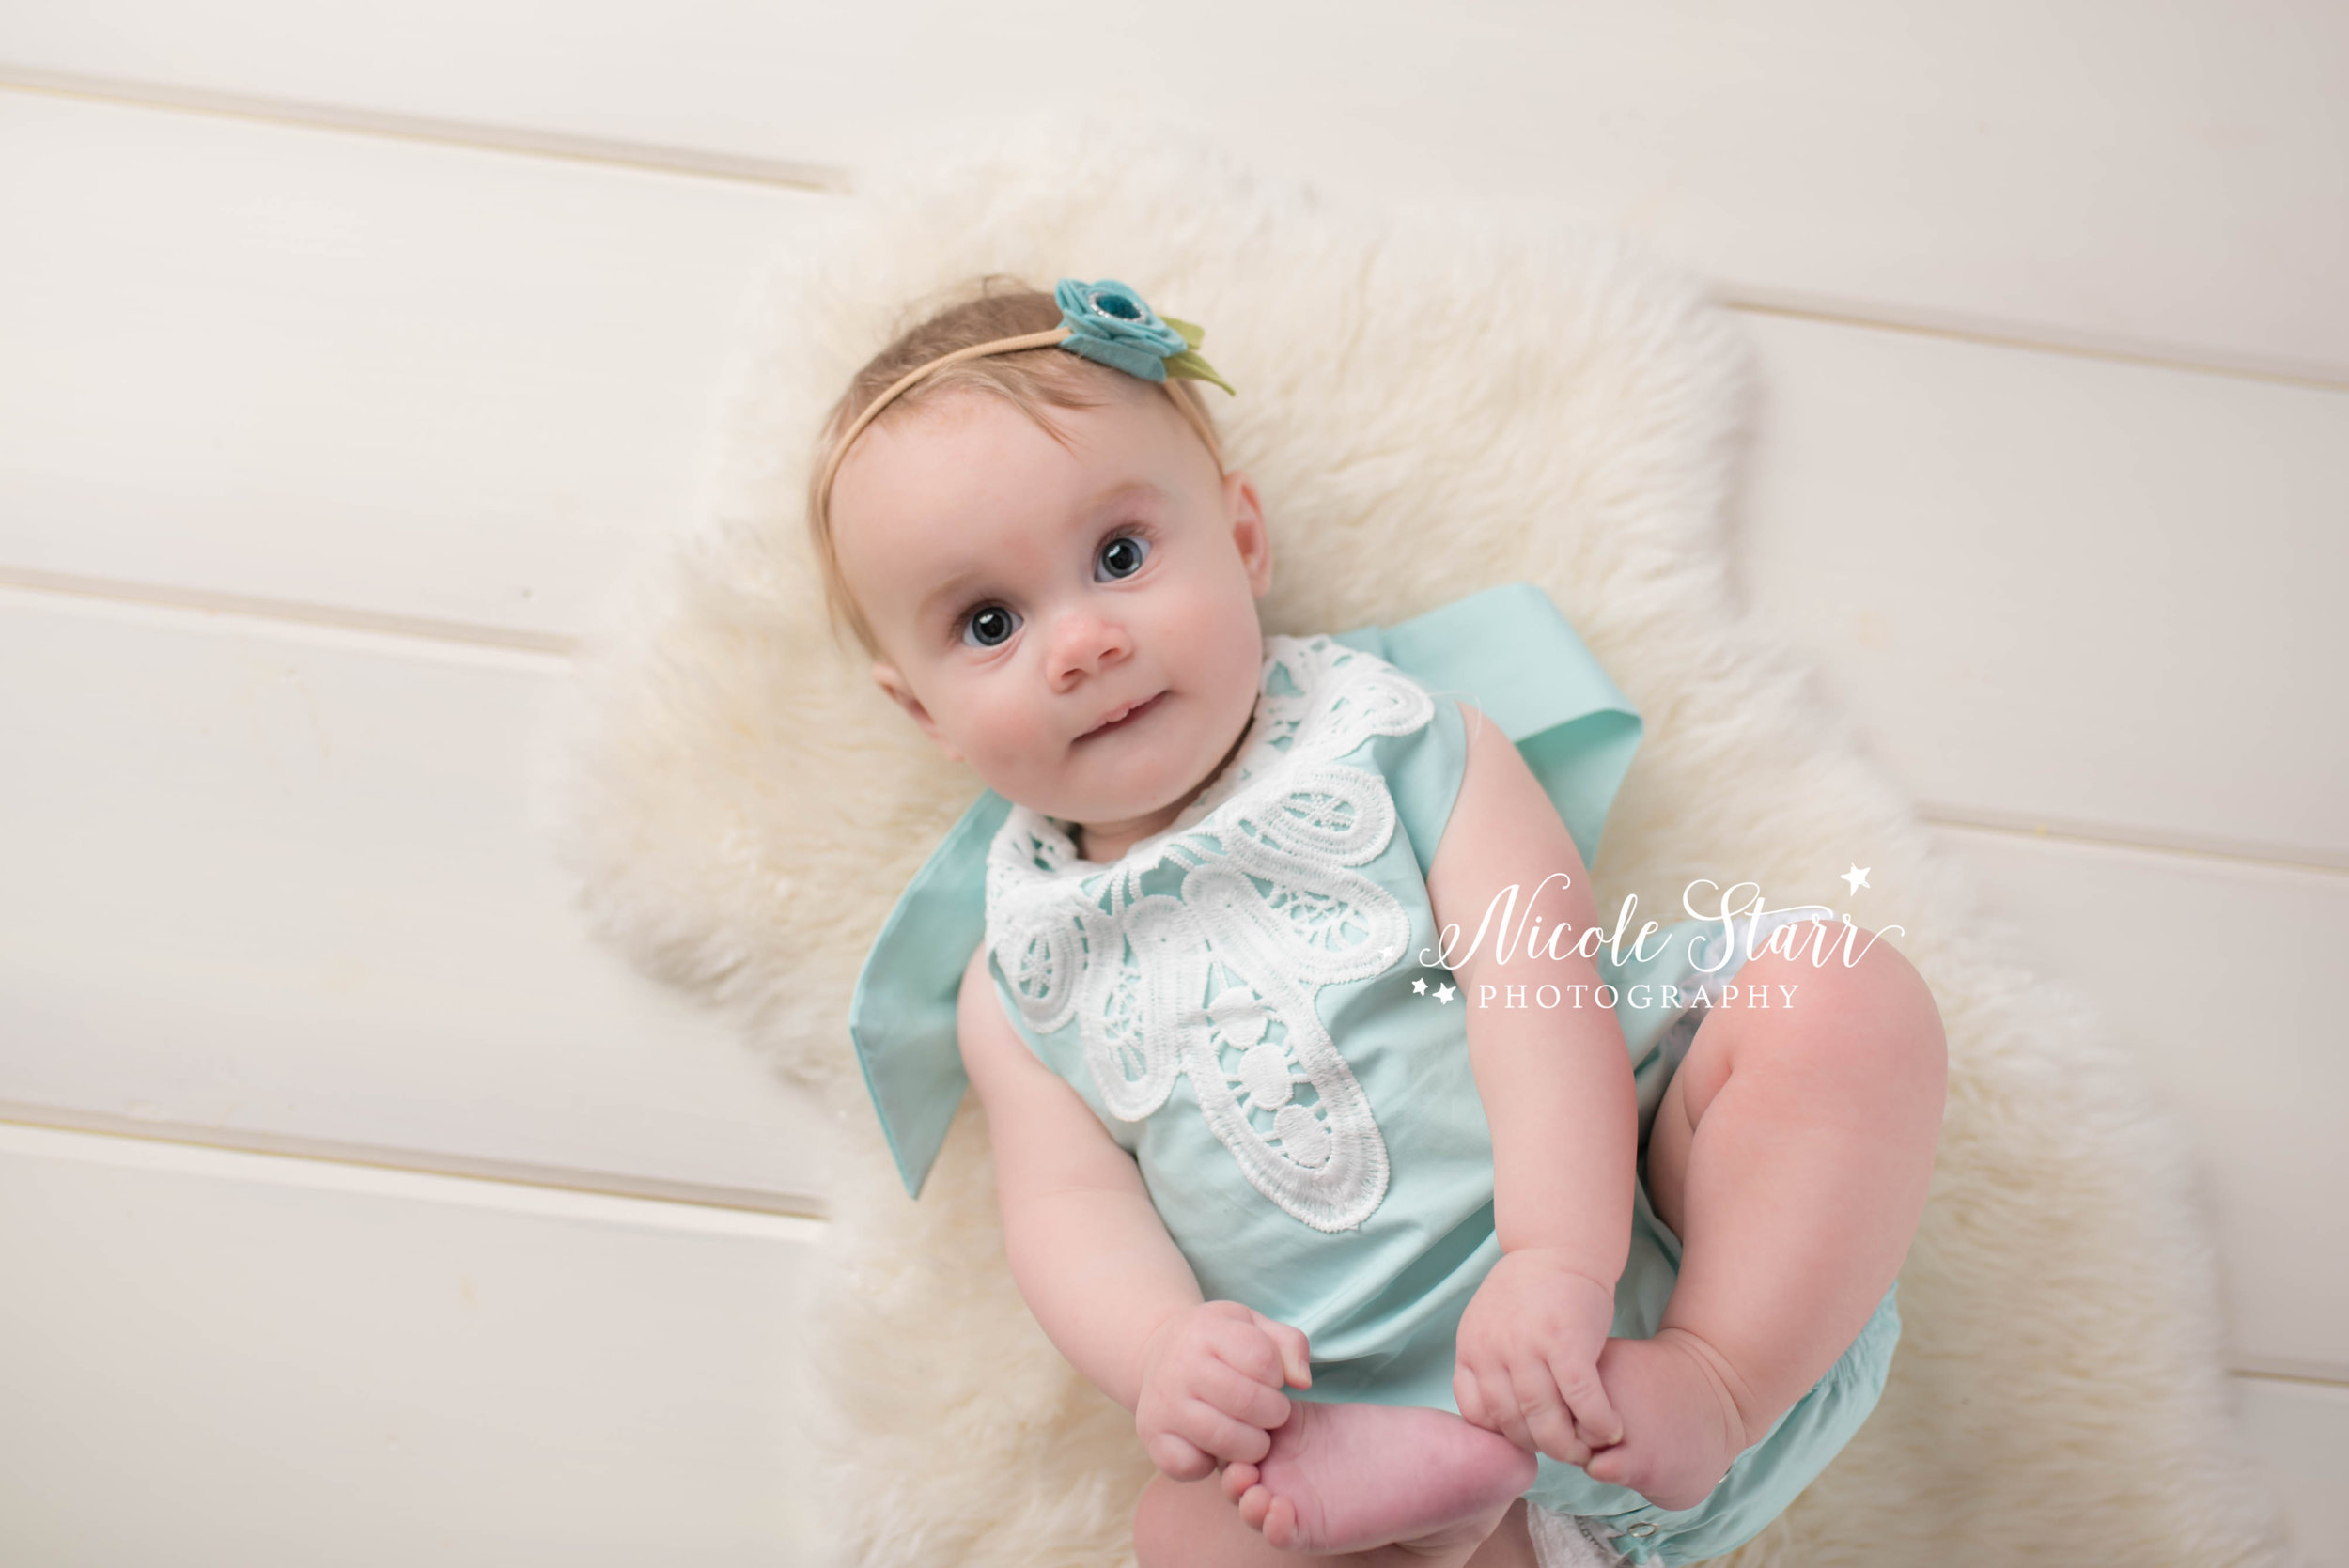 Nicole Starr Photography | Saratoga Springs, NY | children's milestone photographer